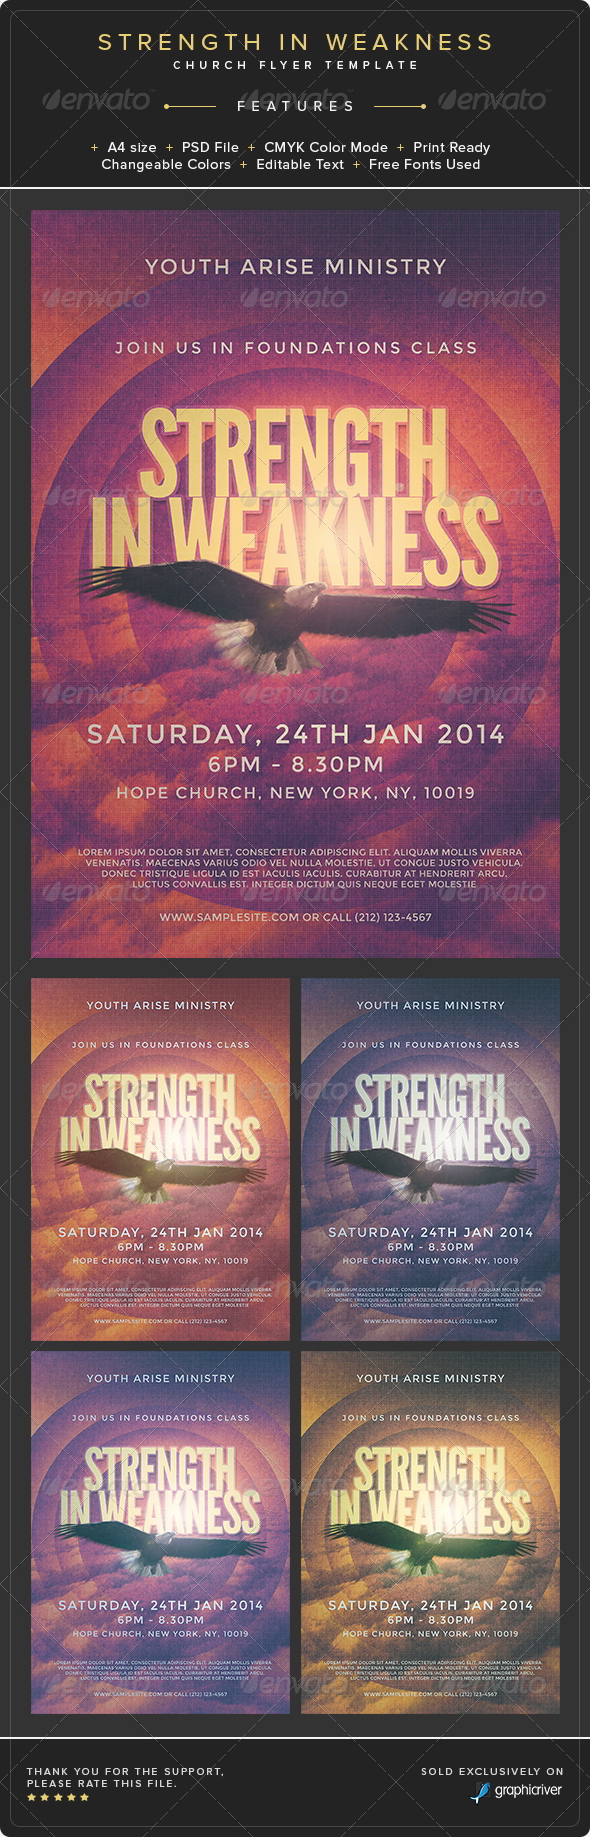 GraphicRiver Strength in Weakness Church Flyer Template 8768204